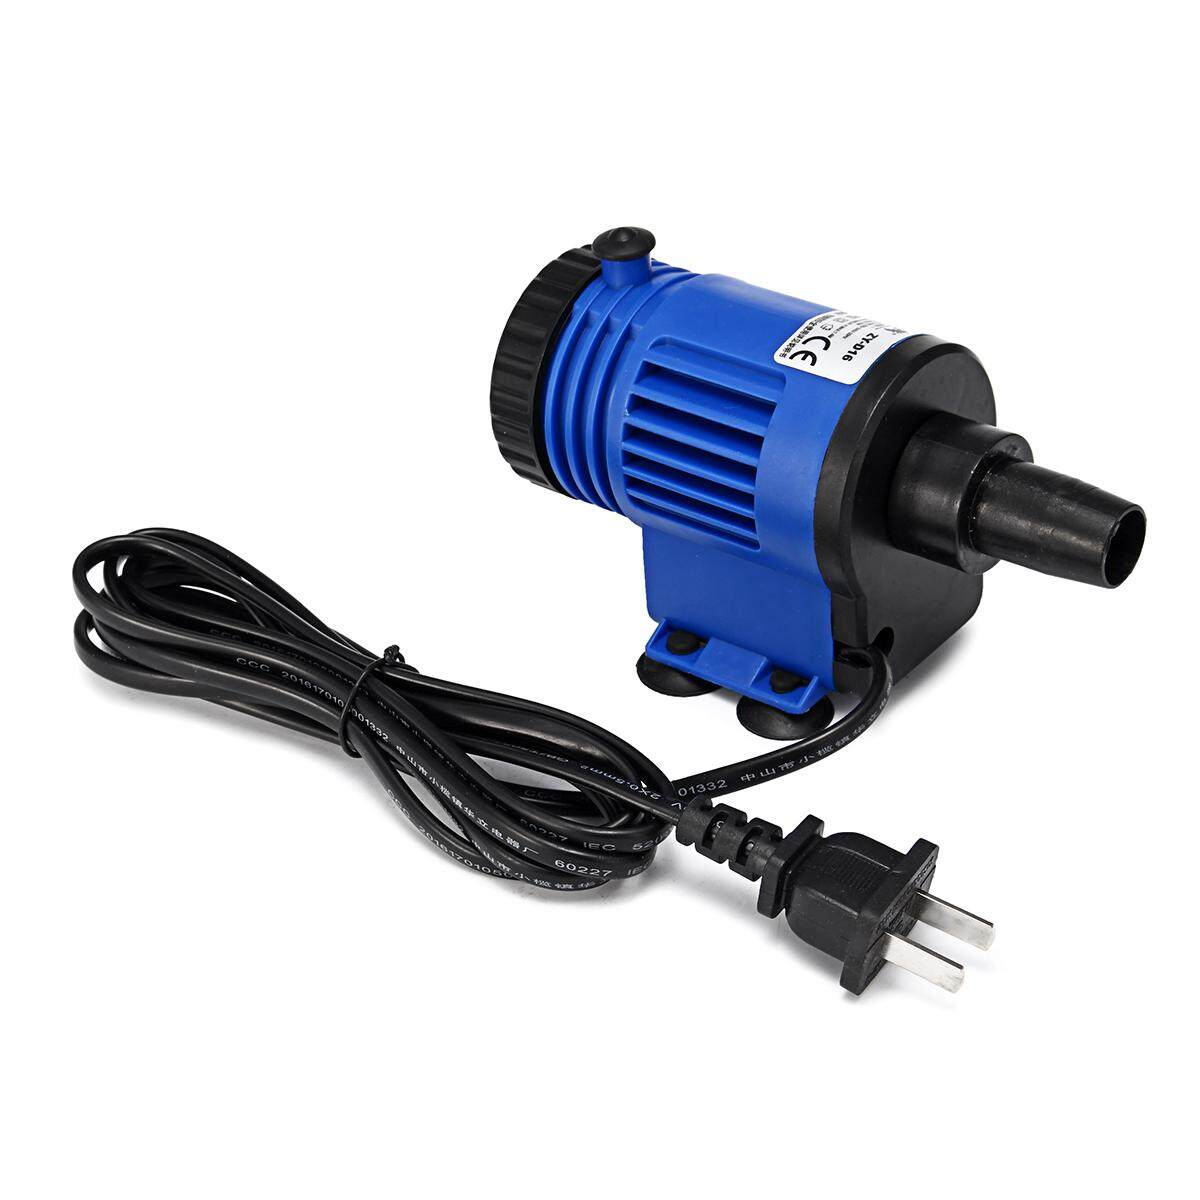 Pet Supplies Imported From Abroad New Aquarium Fish Tank Cleaner Electric Motor Vacuum Siphon Cleaner Water Filter